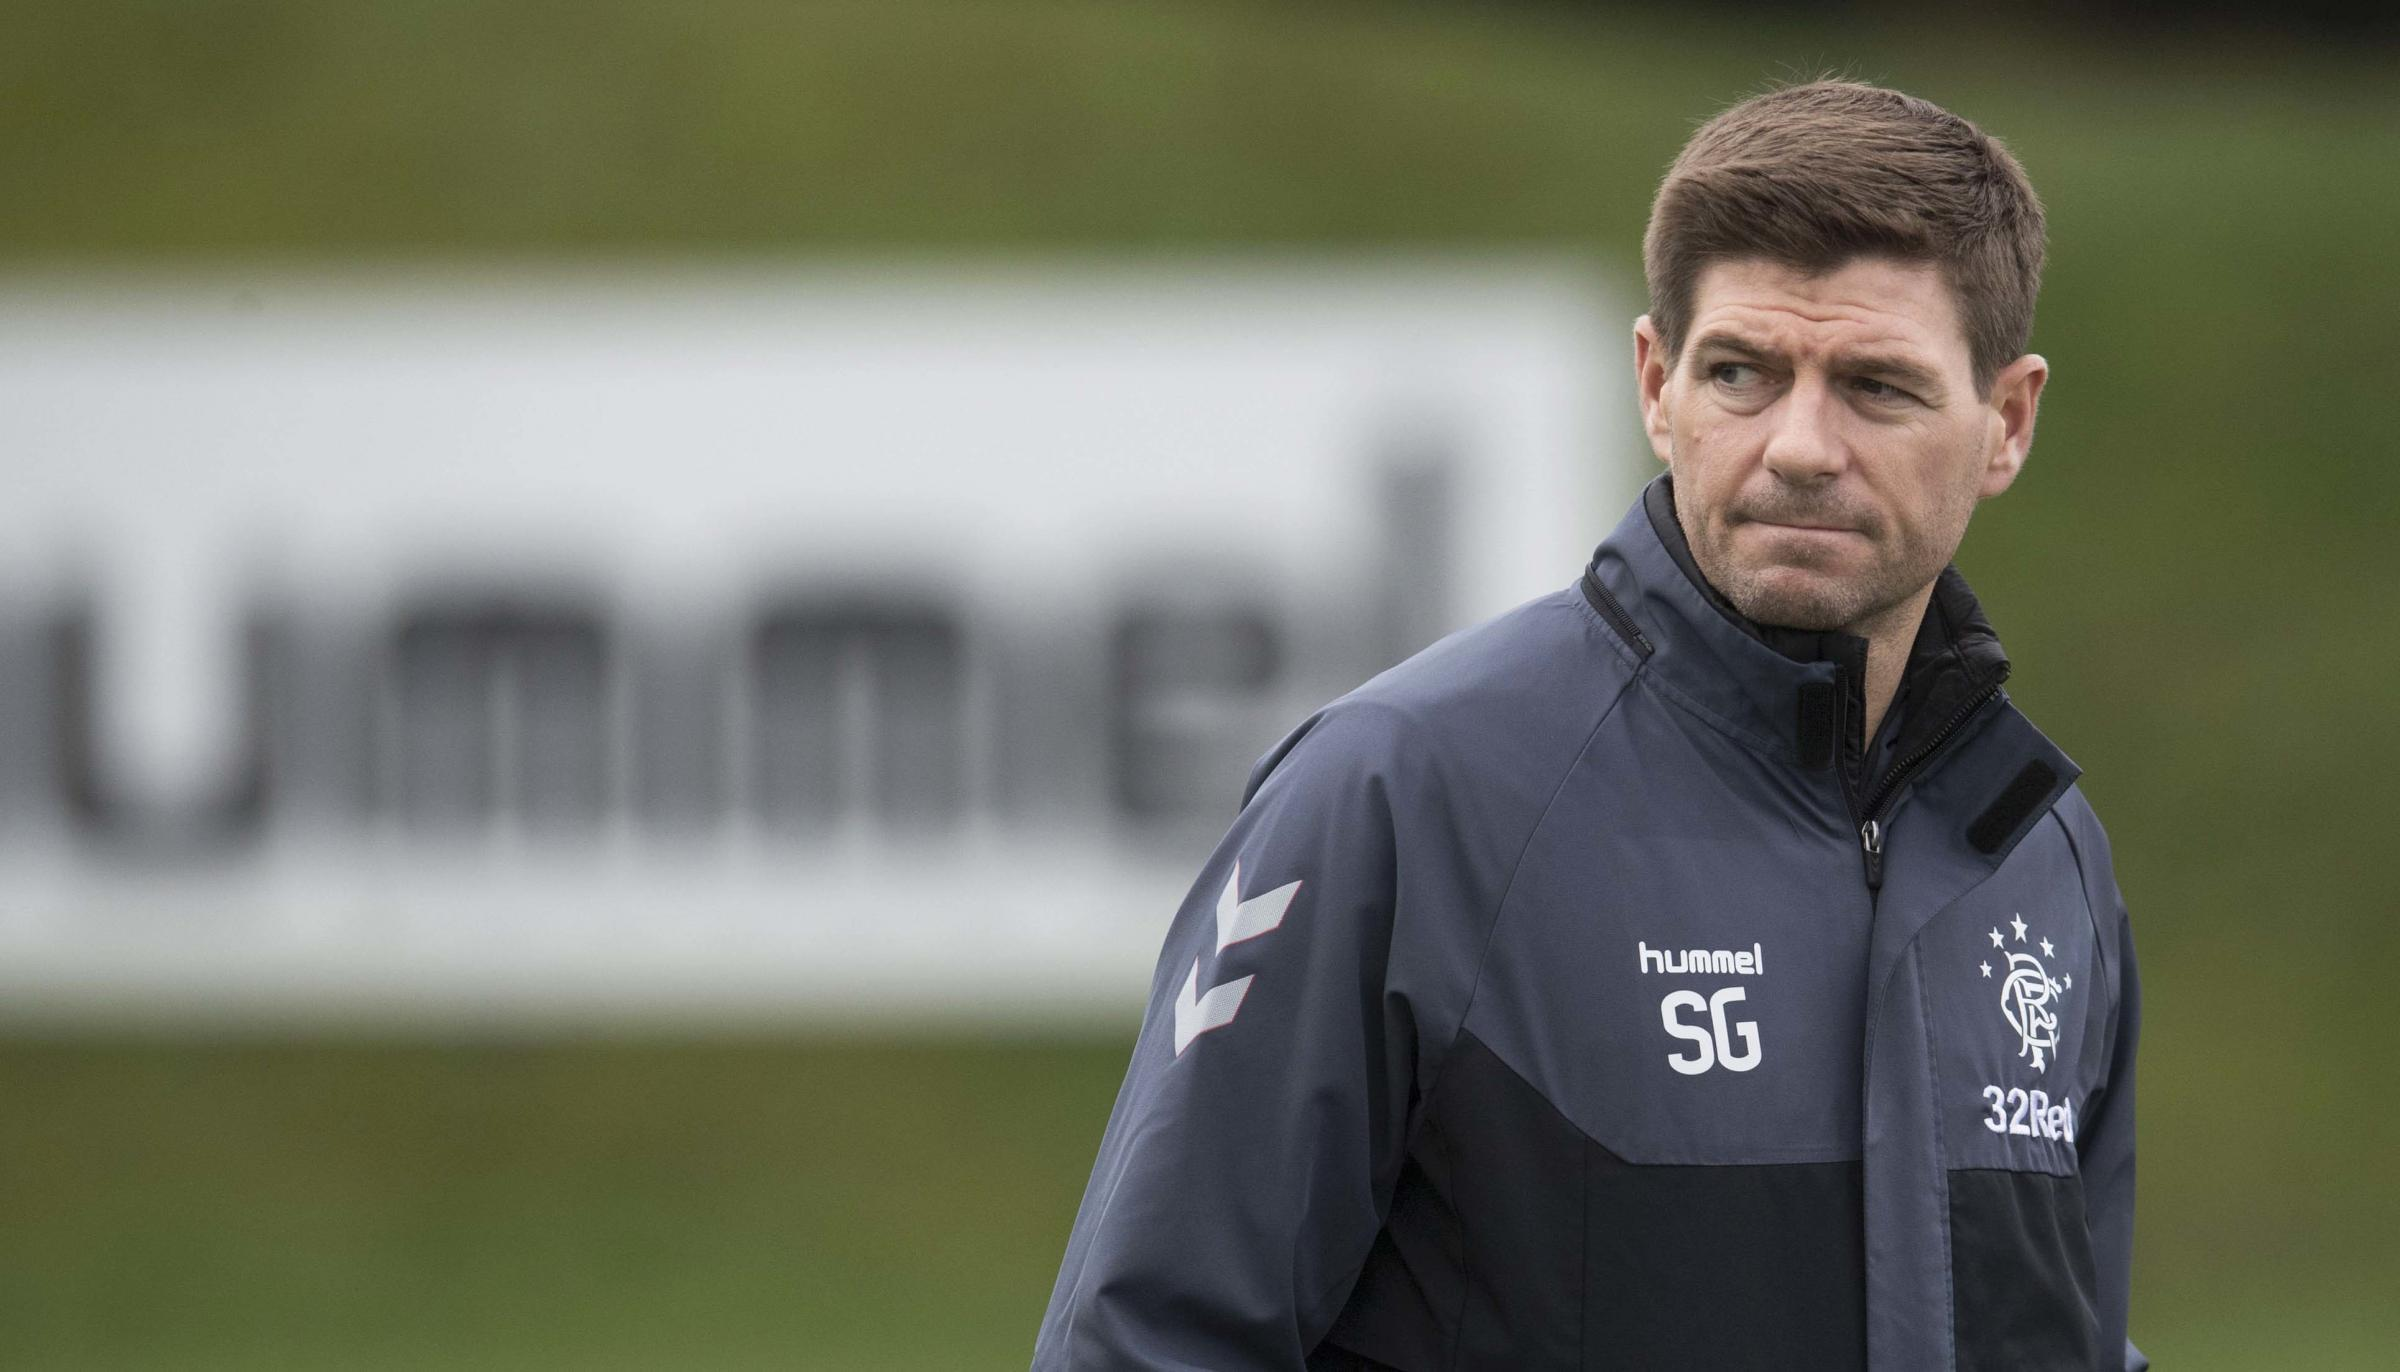 Rangers can topple Celtic as the dominant force in Scotland next season if . . .